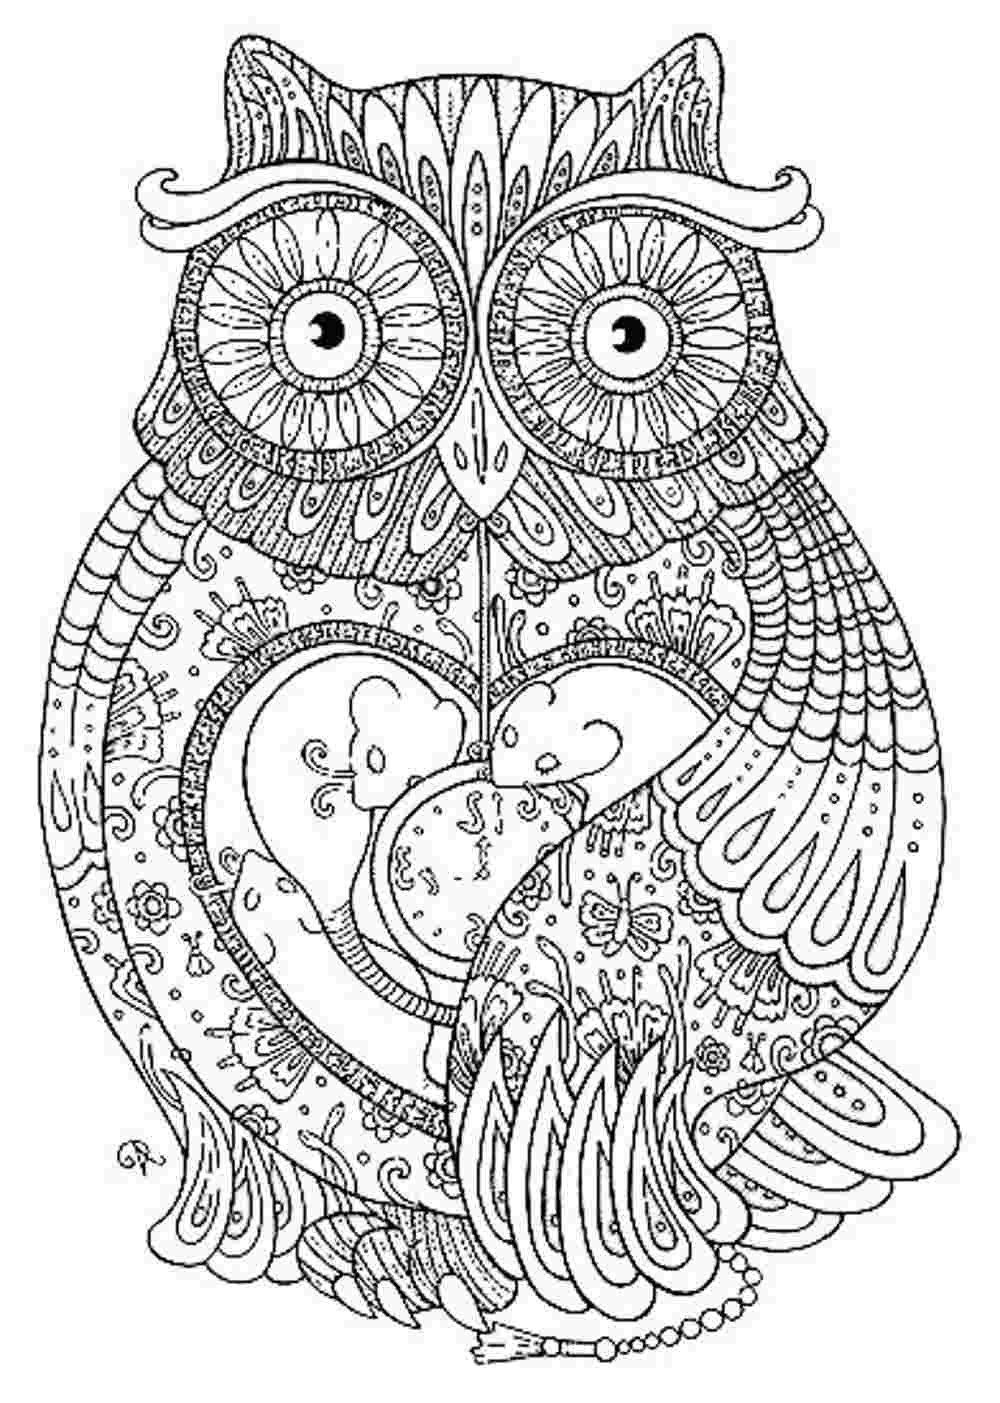 Best ideas about Coloring Books Adult . Save or Pin Free Printable Coloring Book Pages Best Adult Coloring Now.